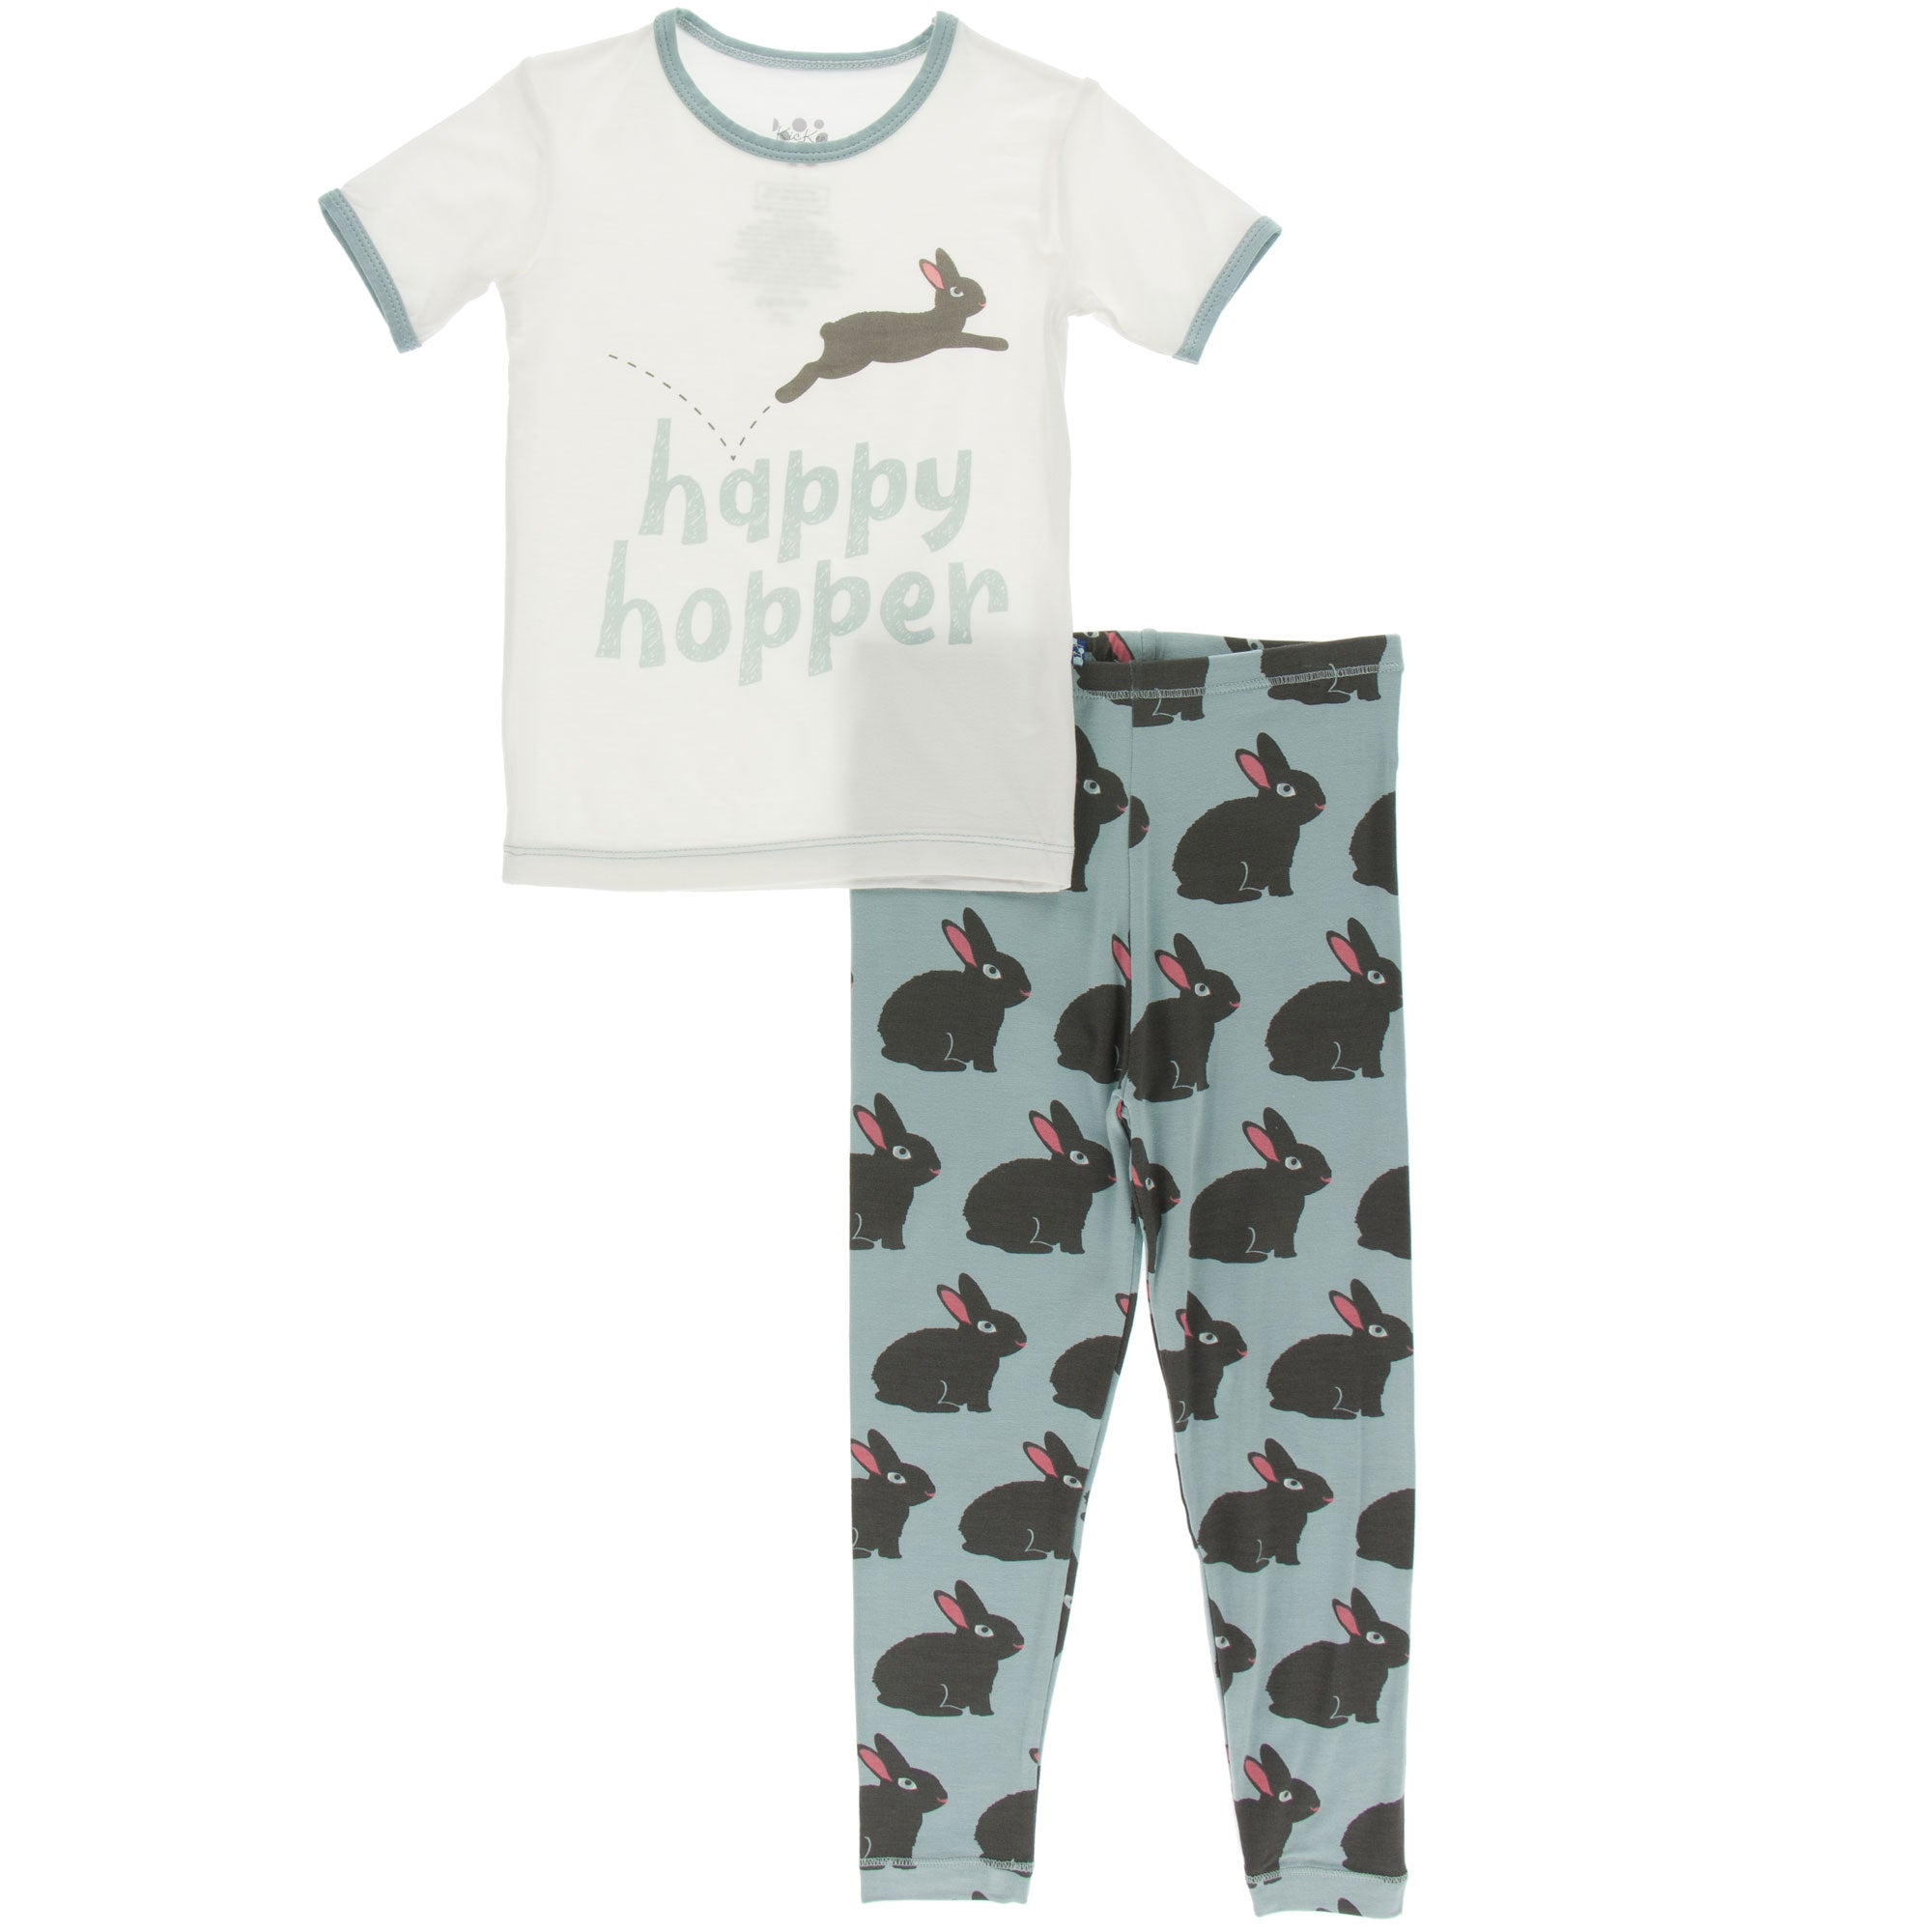 KicKee Pants Short Sleeve Pajama Set - Jade Forest Rabbit